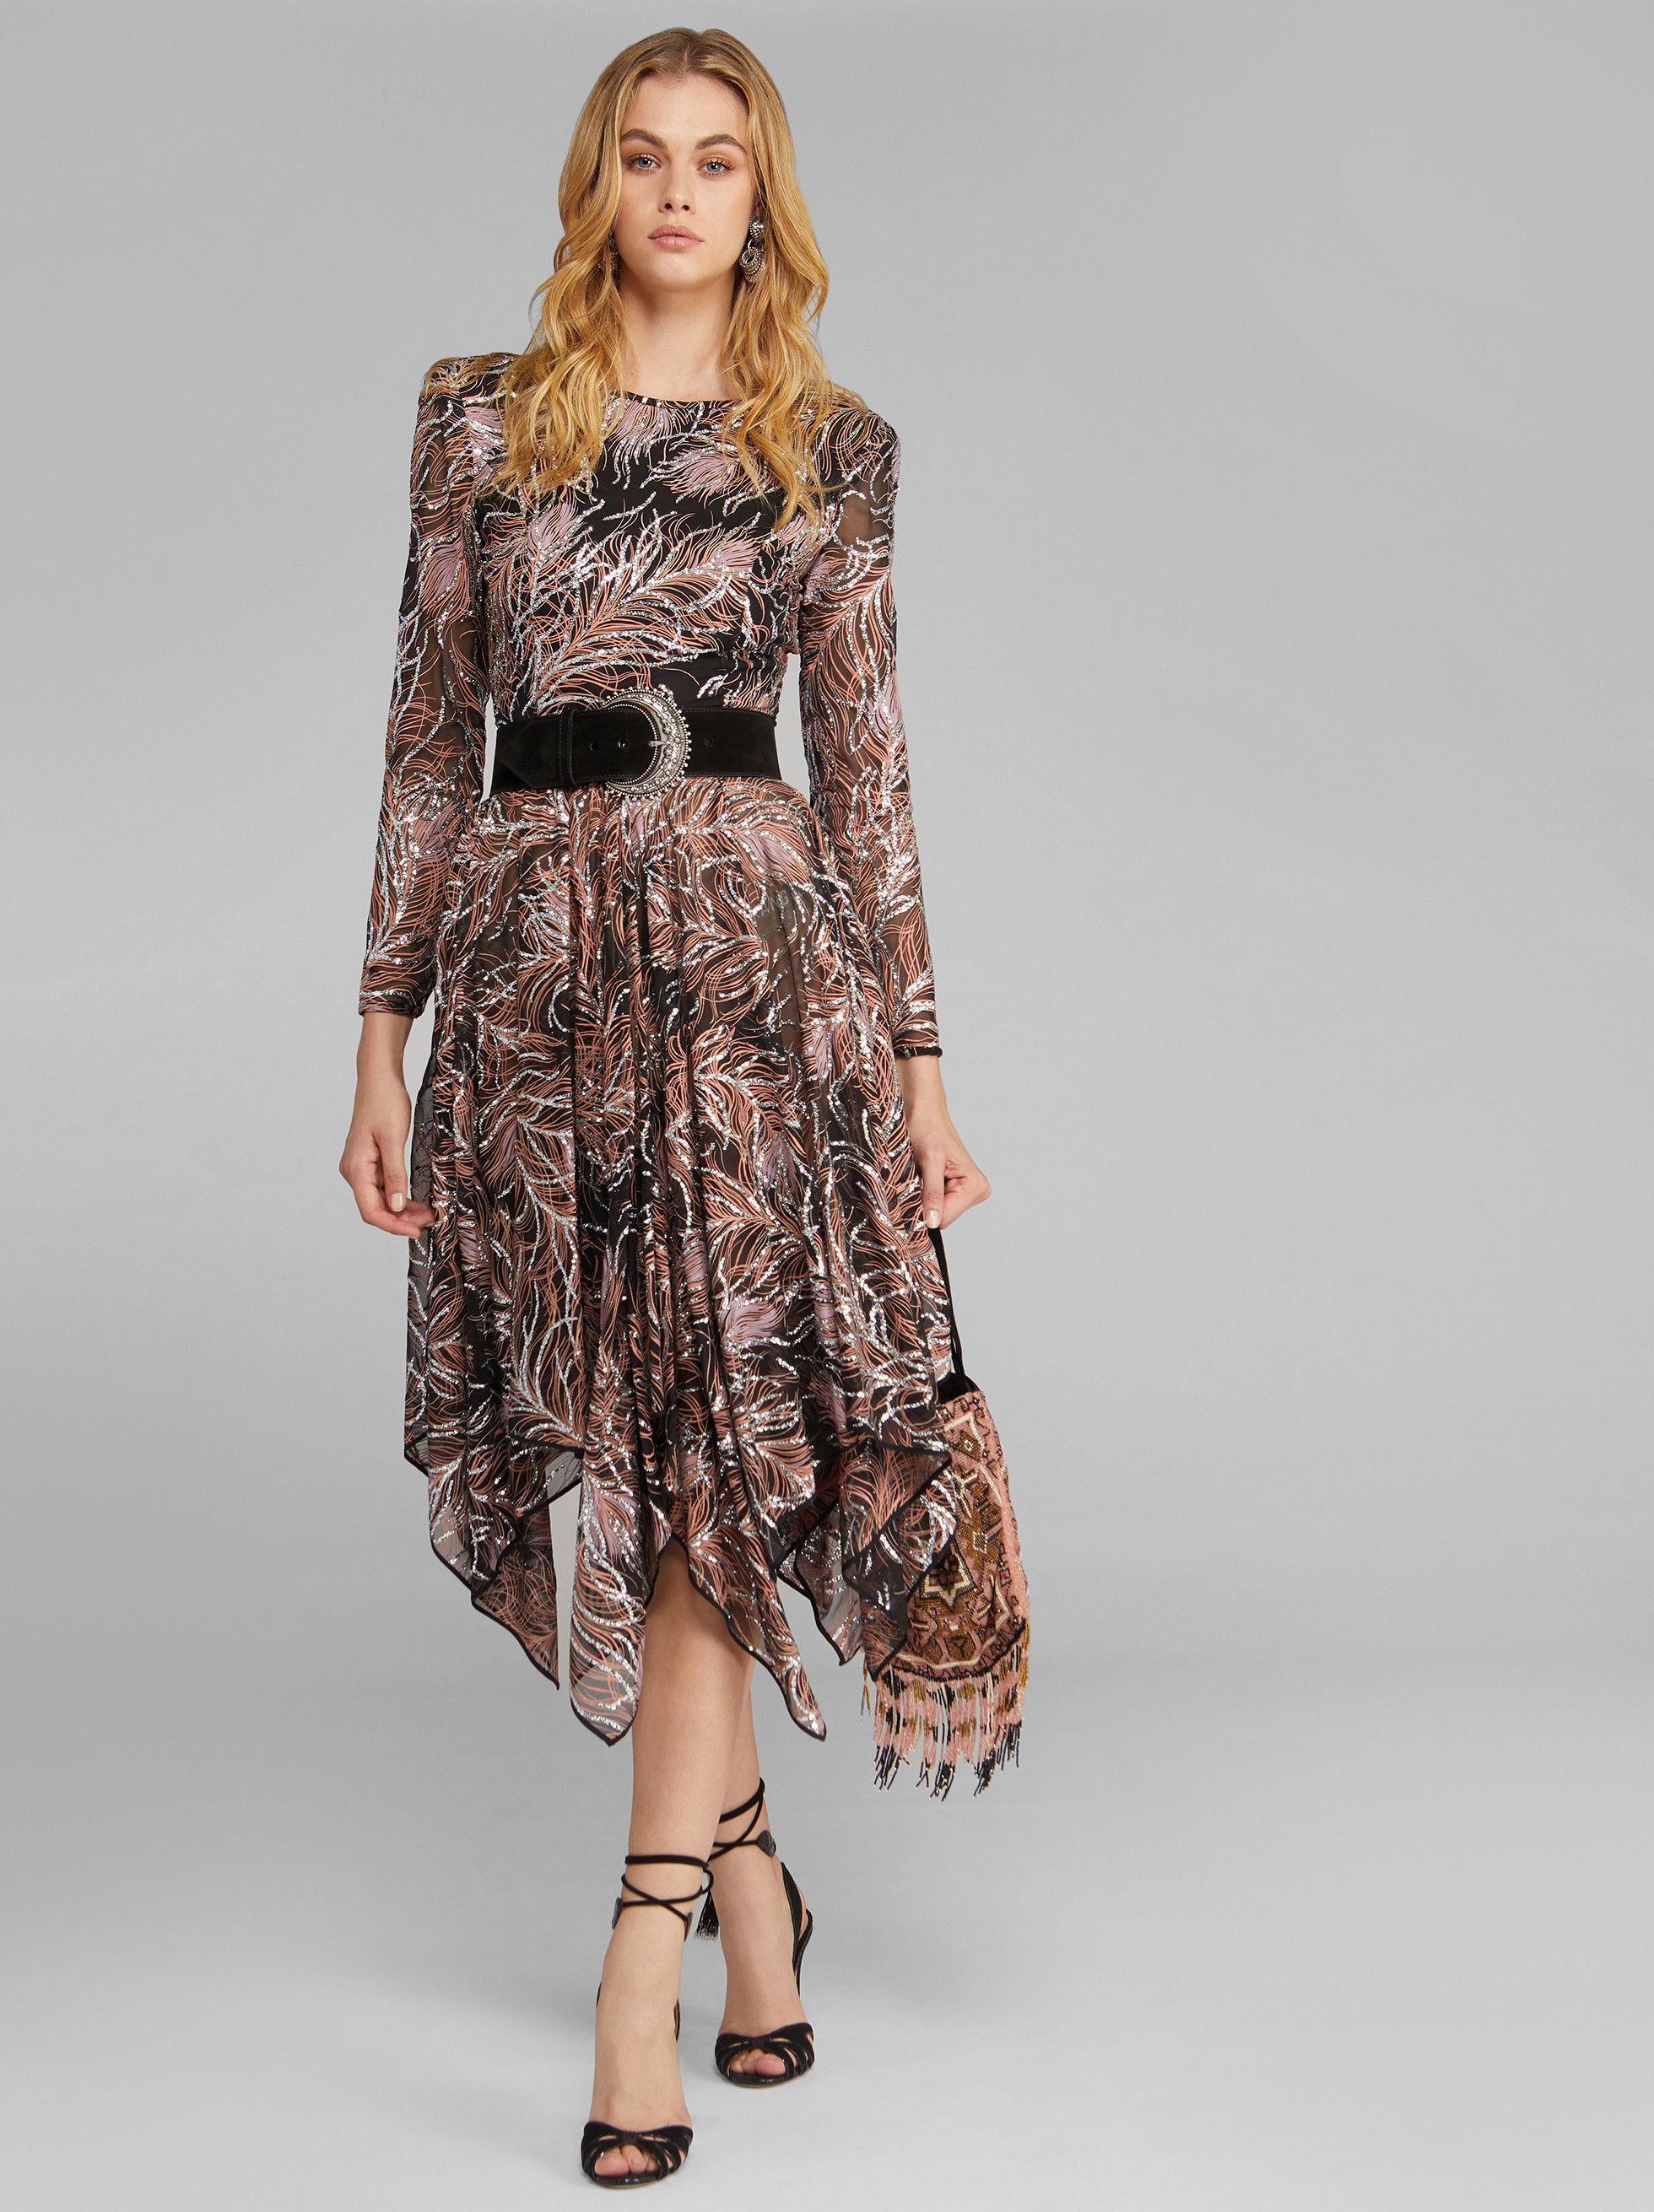 CHIFFON DRESS WITH GLITTER PATTERNS